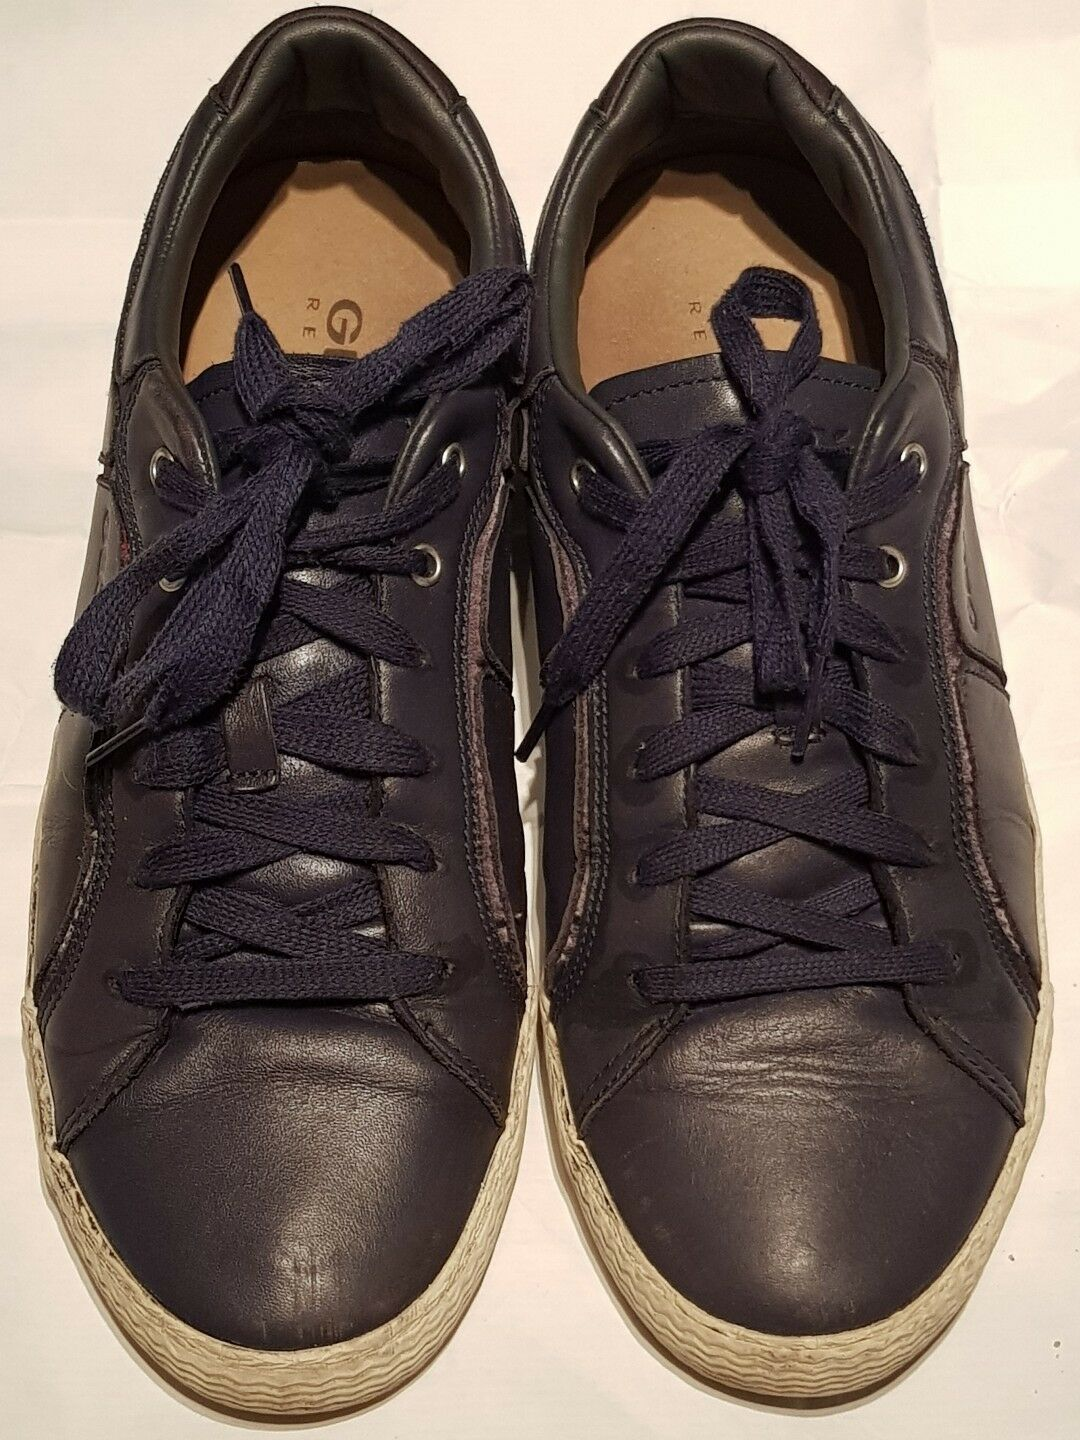 GEOX -RESPIRA MAN ELEGANT blueE LEATHER  LACE UP CASUAL SHOES US 10